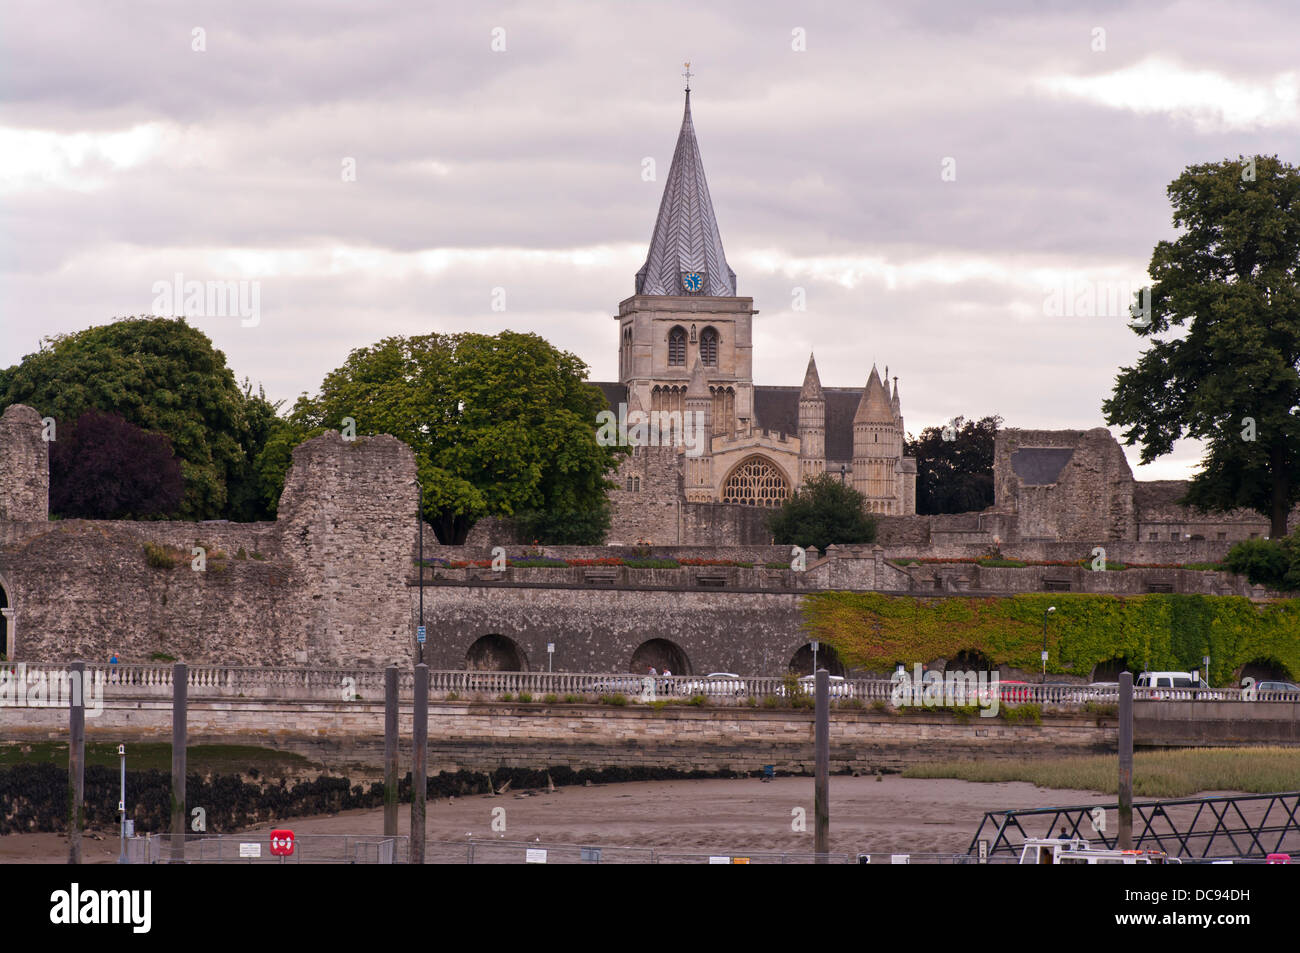 Rochester Cathedral In The Medway Town City Of Rochester Kent England UK - Stock Image